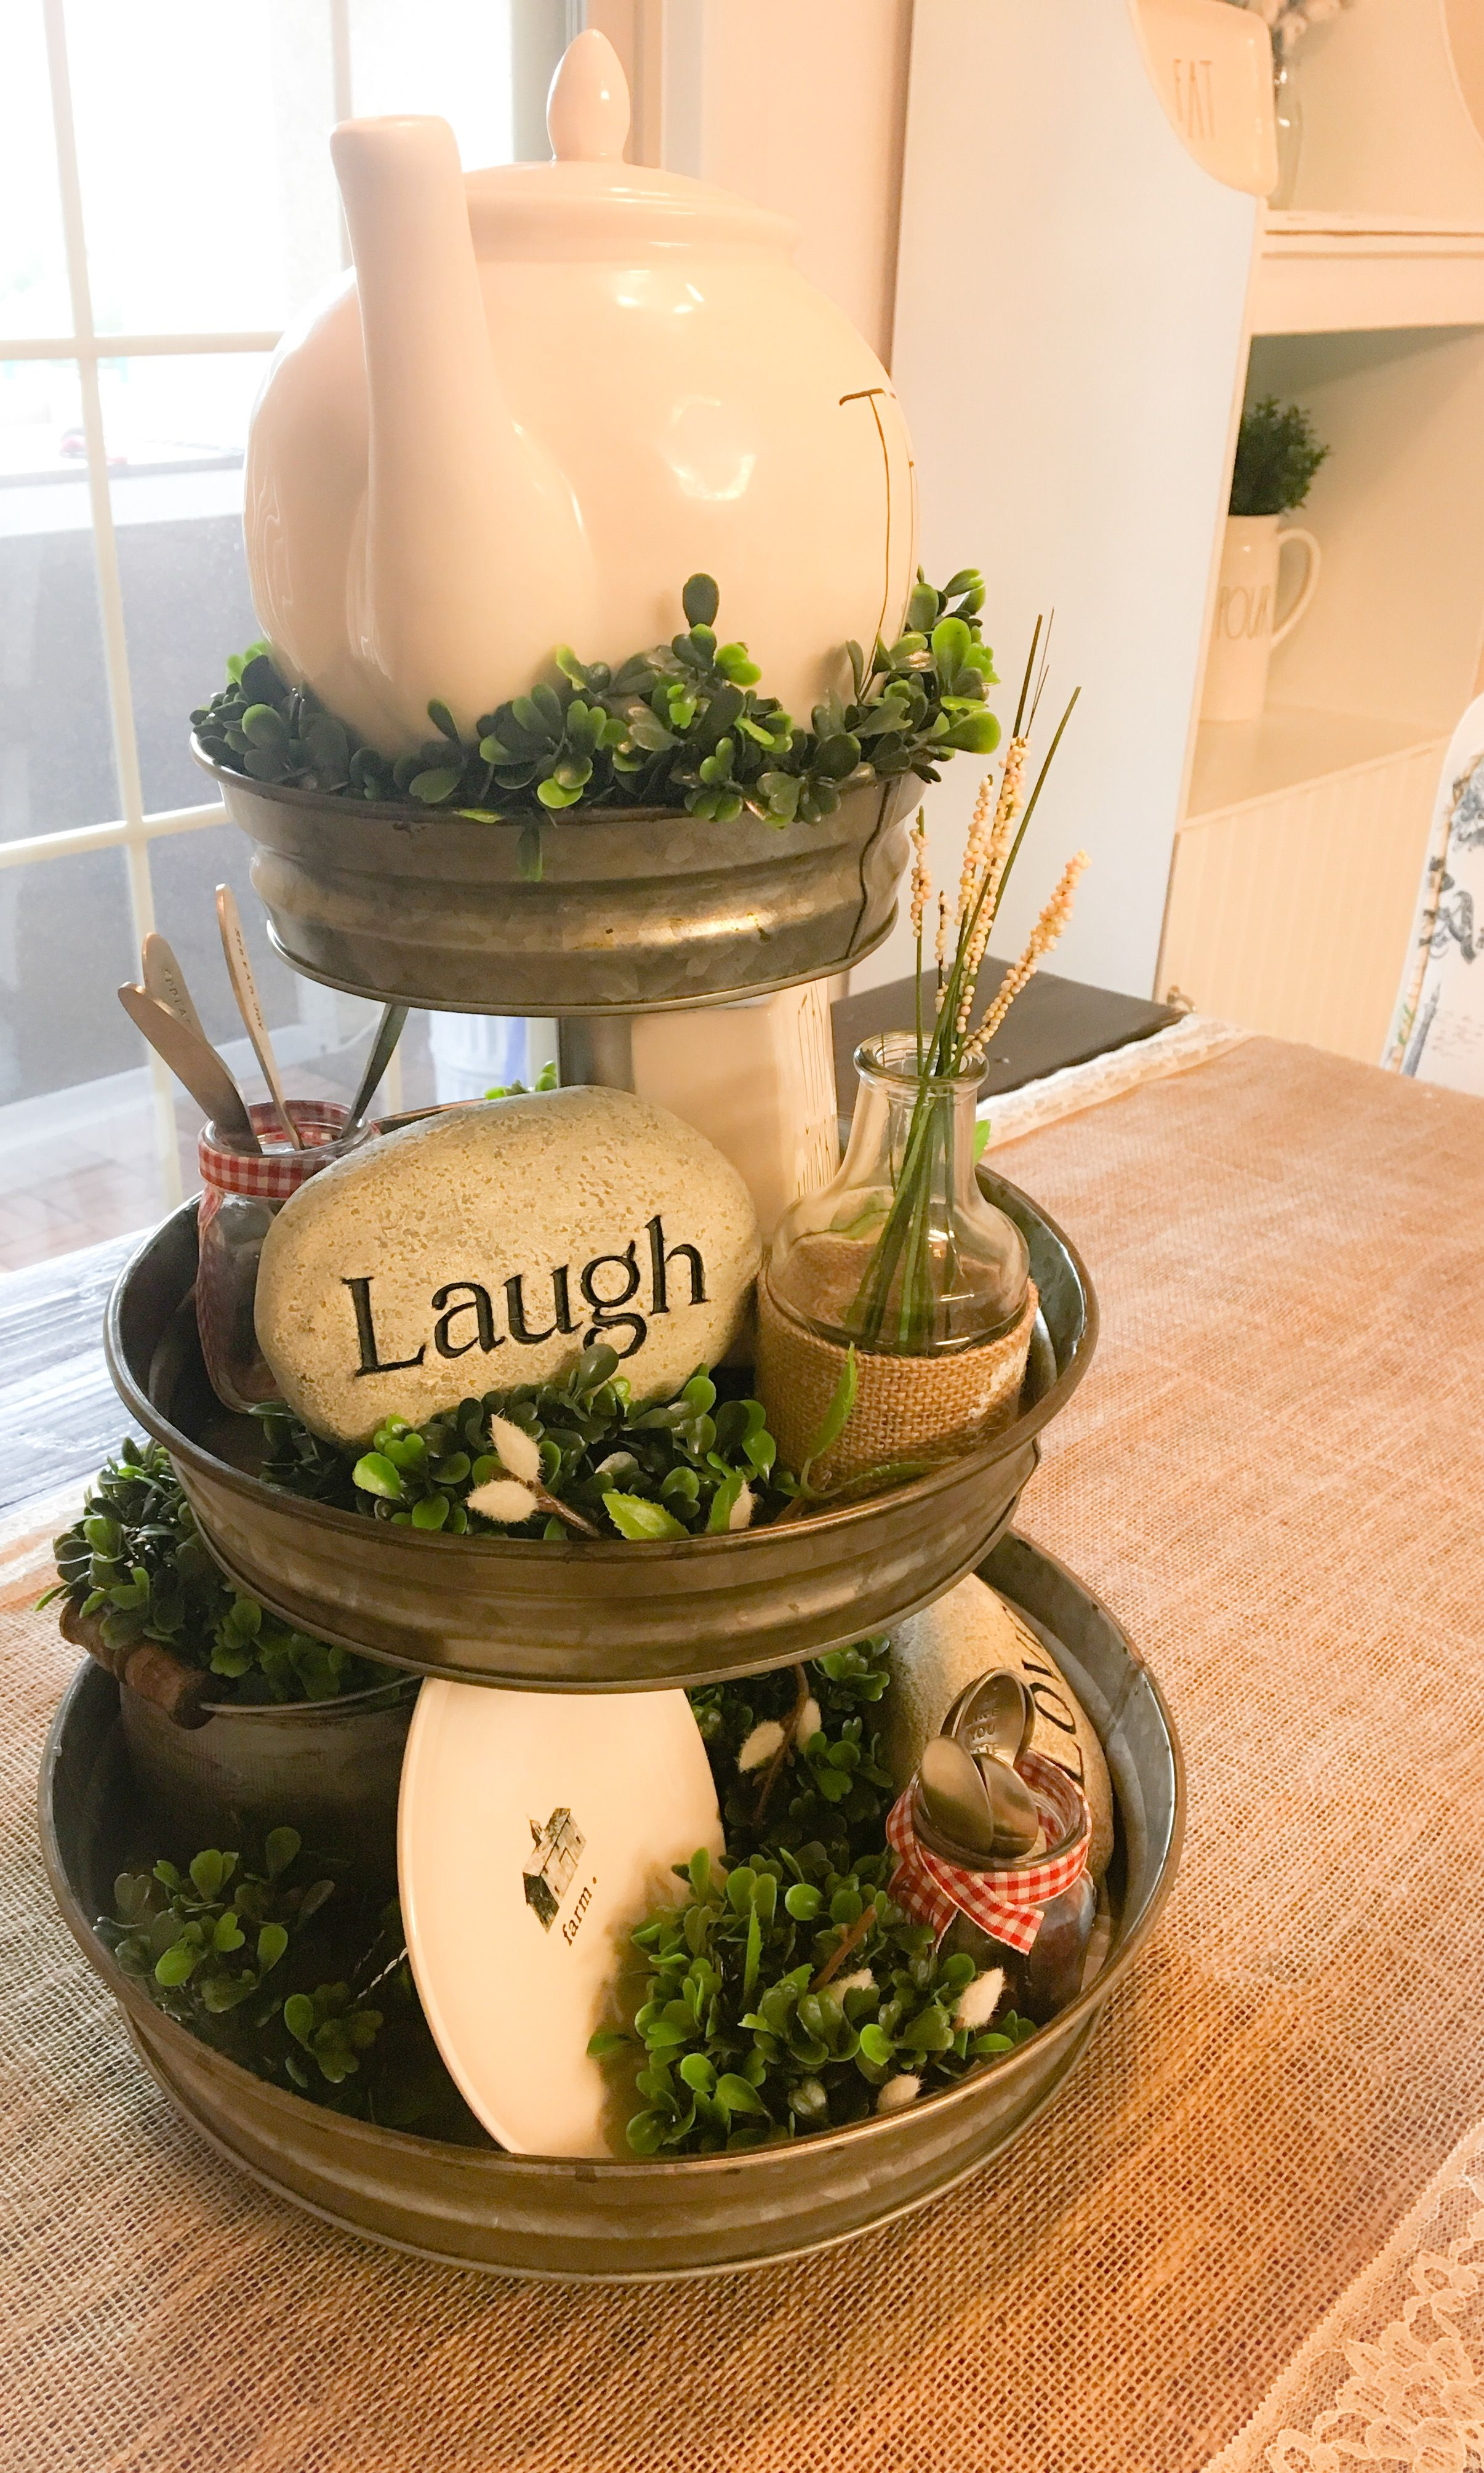 My Everyday Rae Dunn Inspired Farmhouse Table Centerpiece 3 Tier Stand From Hobb Kitchen Table Centerpiece Farmhouse Table Centerpieces Farmhouse Table Decor